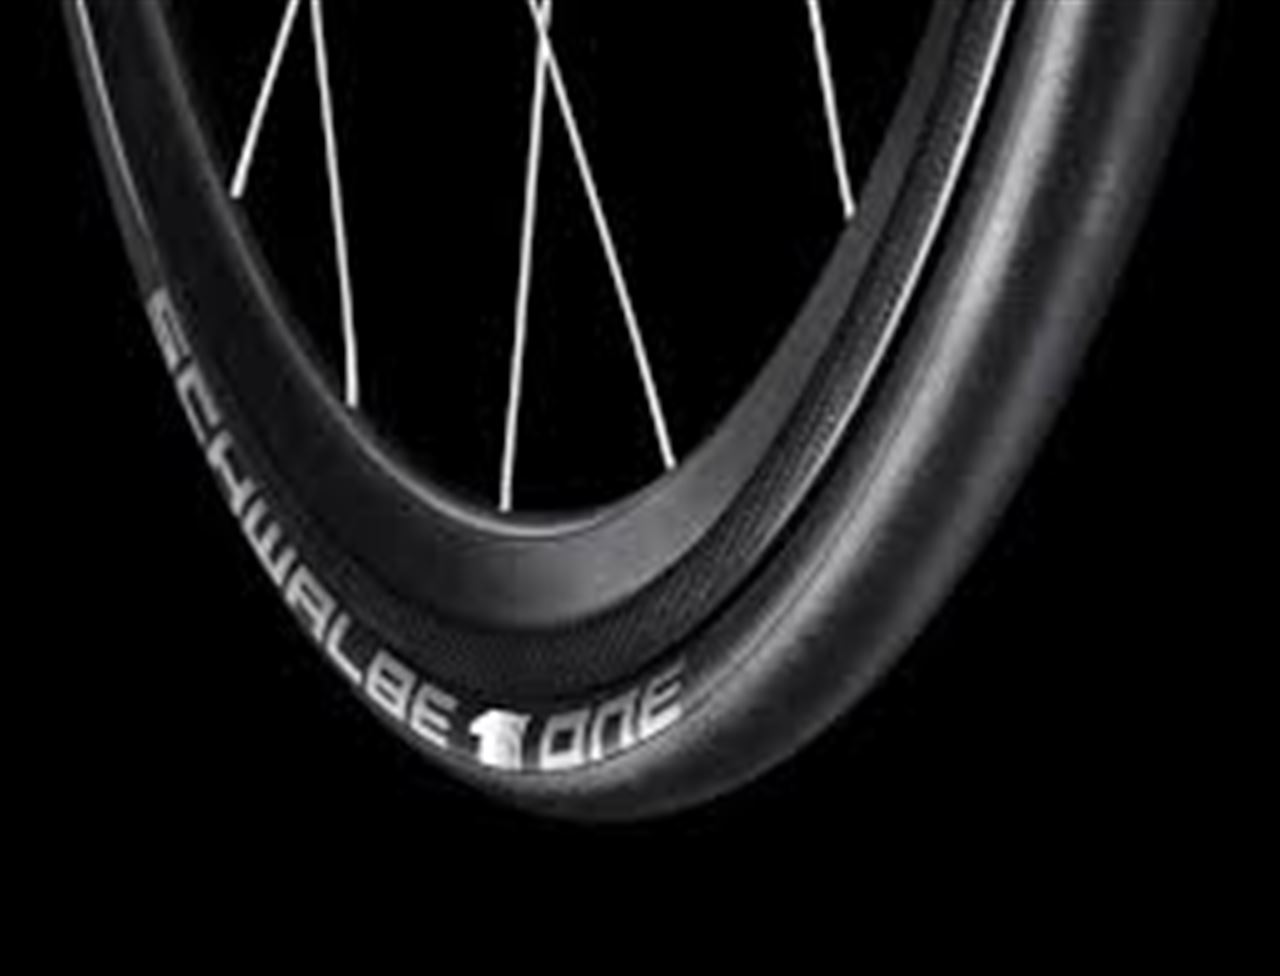 schwalbe one cop foldable